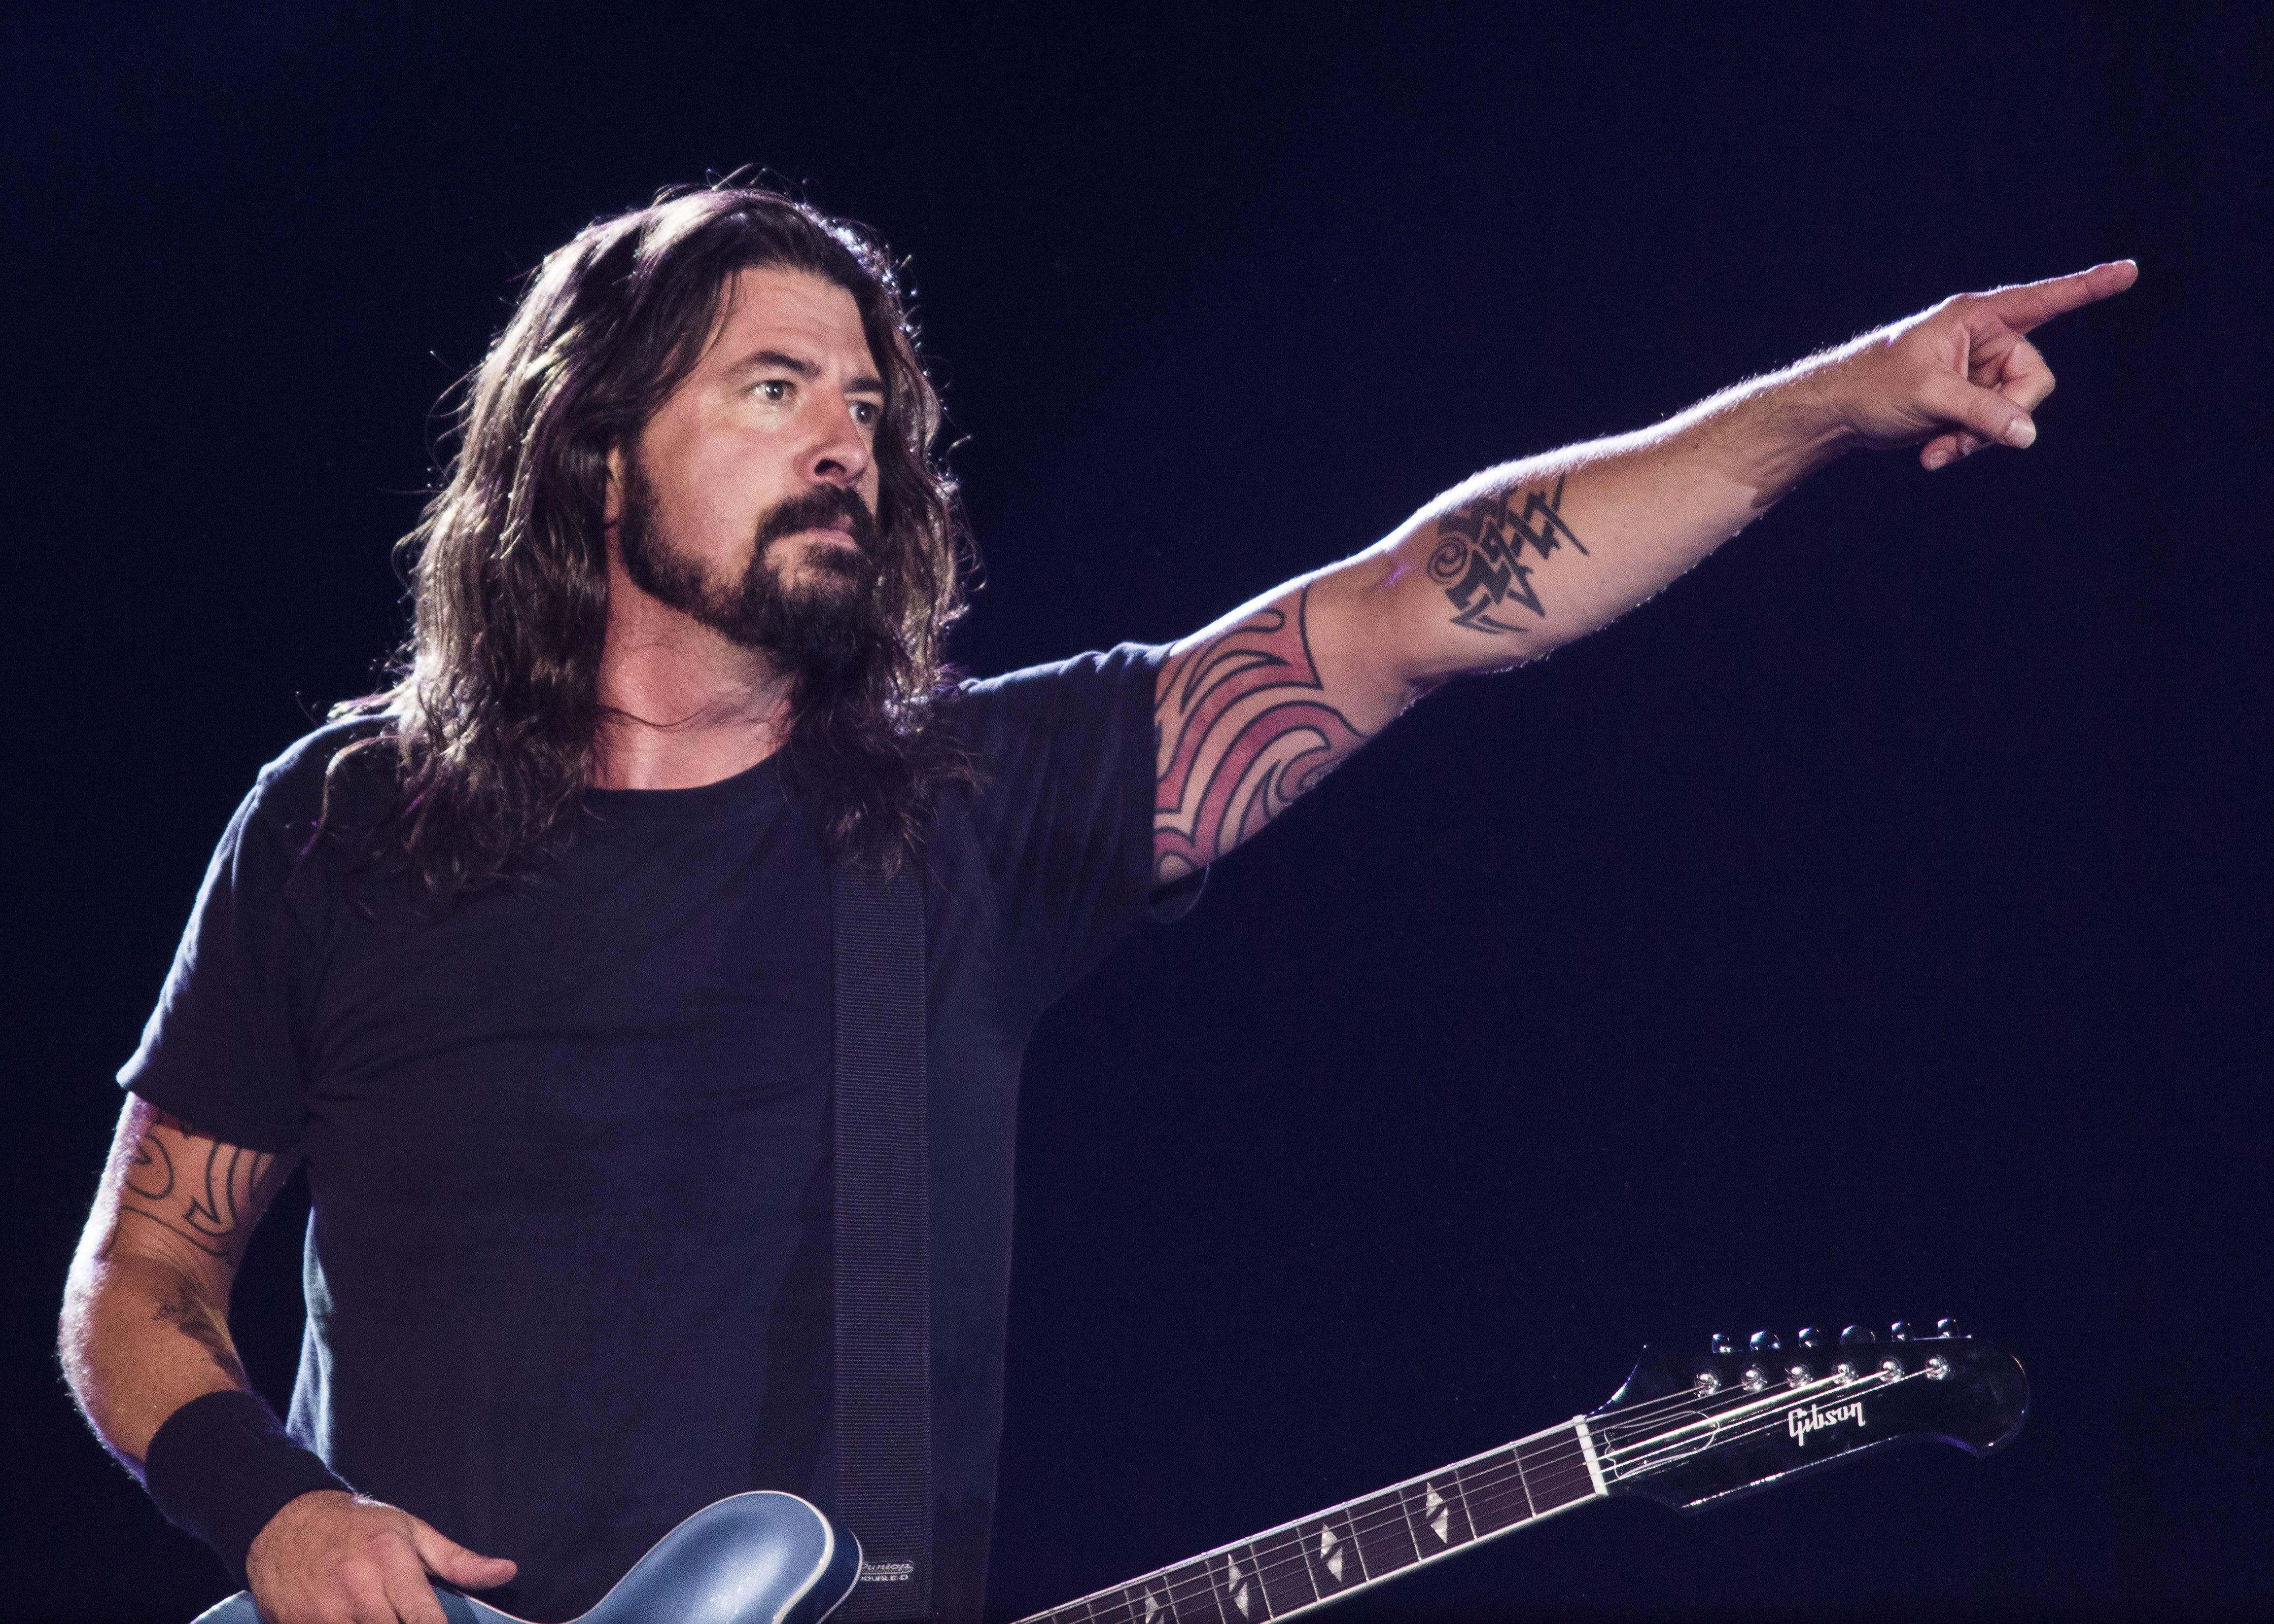 RIO DE JANEIRO, BRAZIL - JANUARY 25: Dave Grohl from Foo Fighters performs at Maracana on January 25, 2015 in Rio de Janeiro,